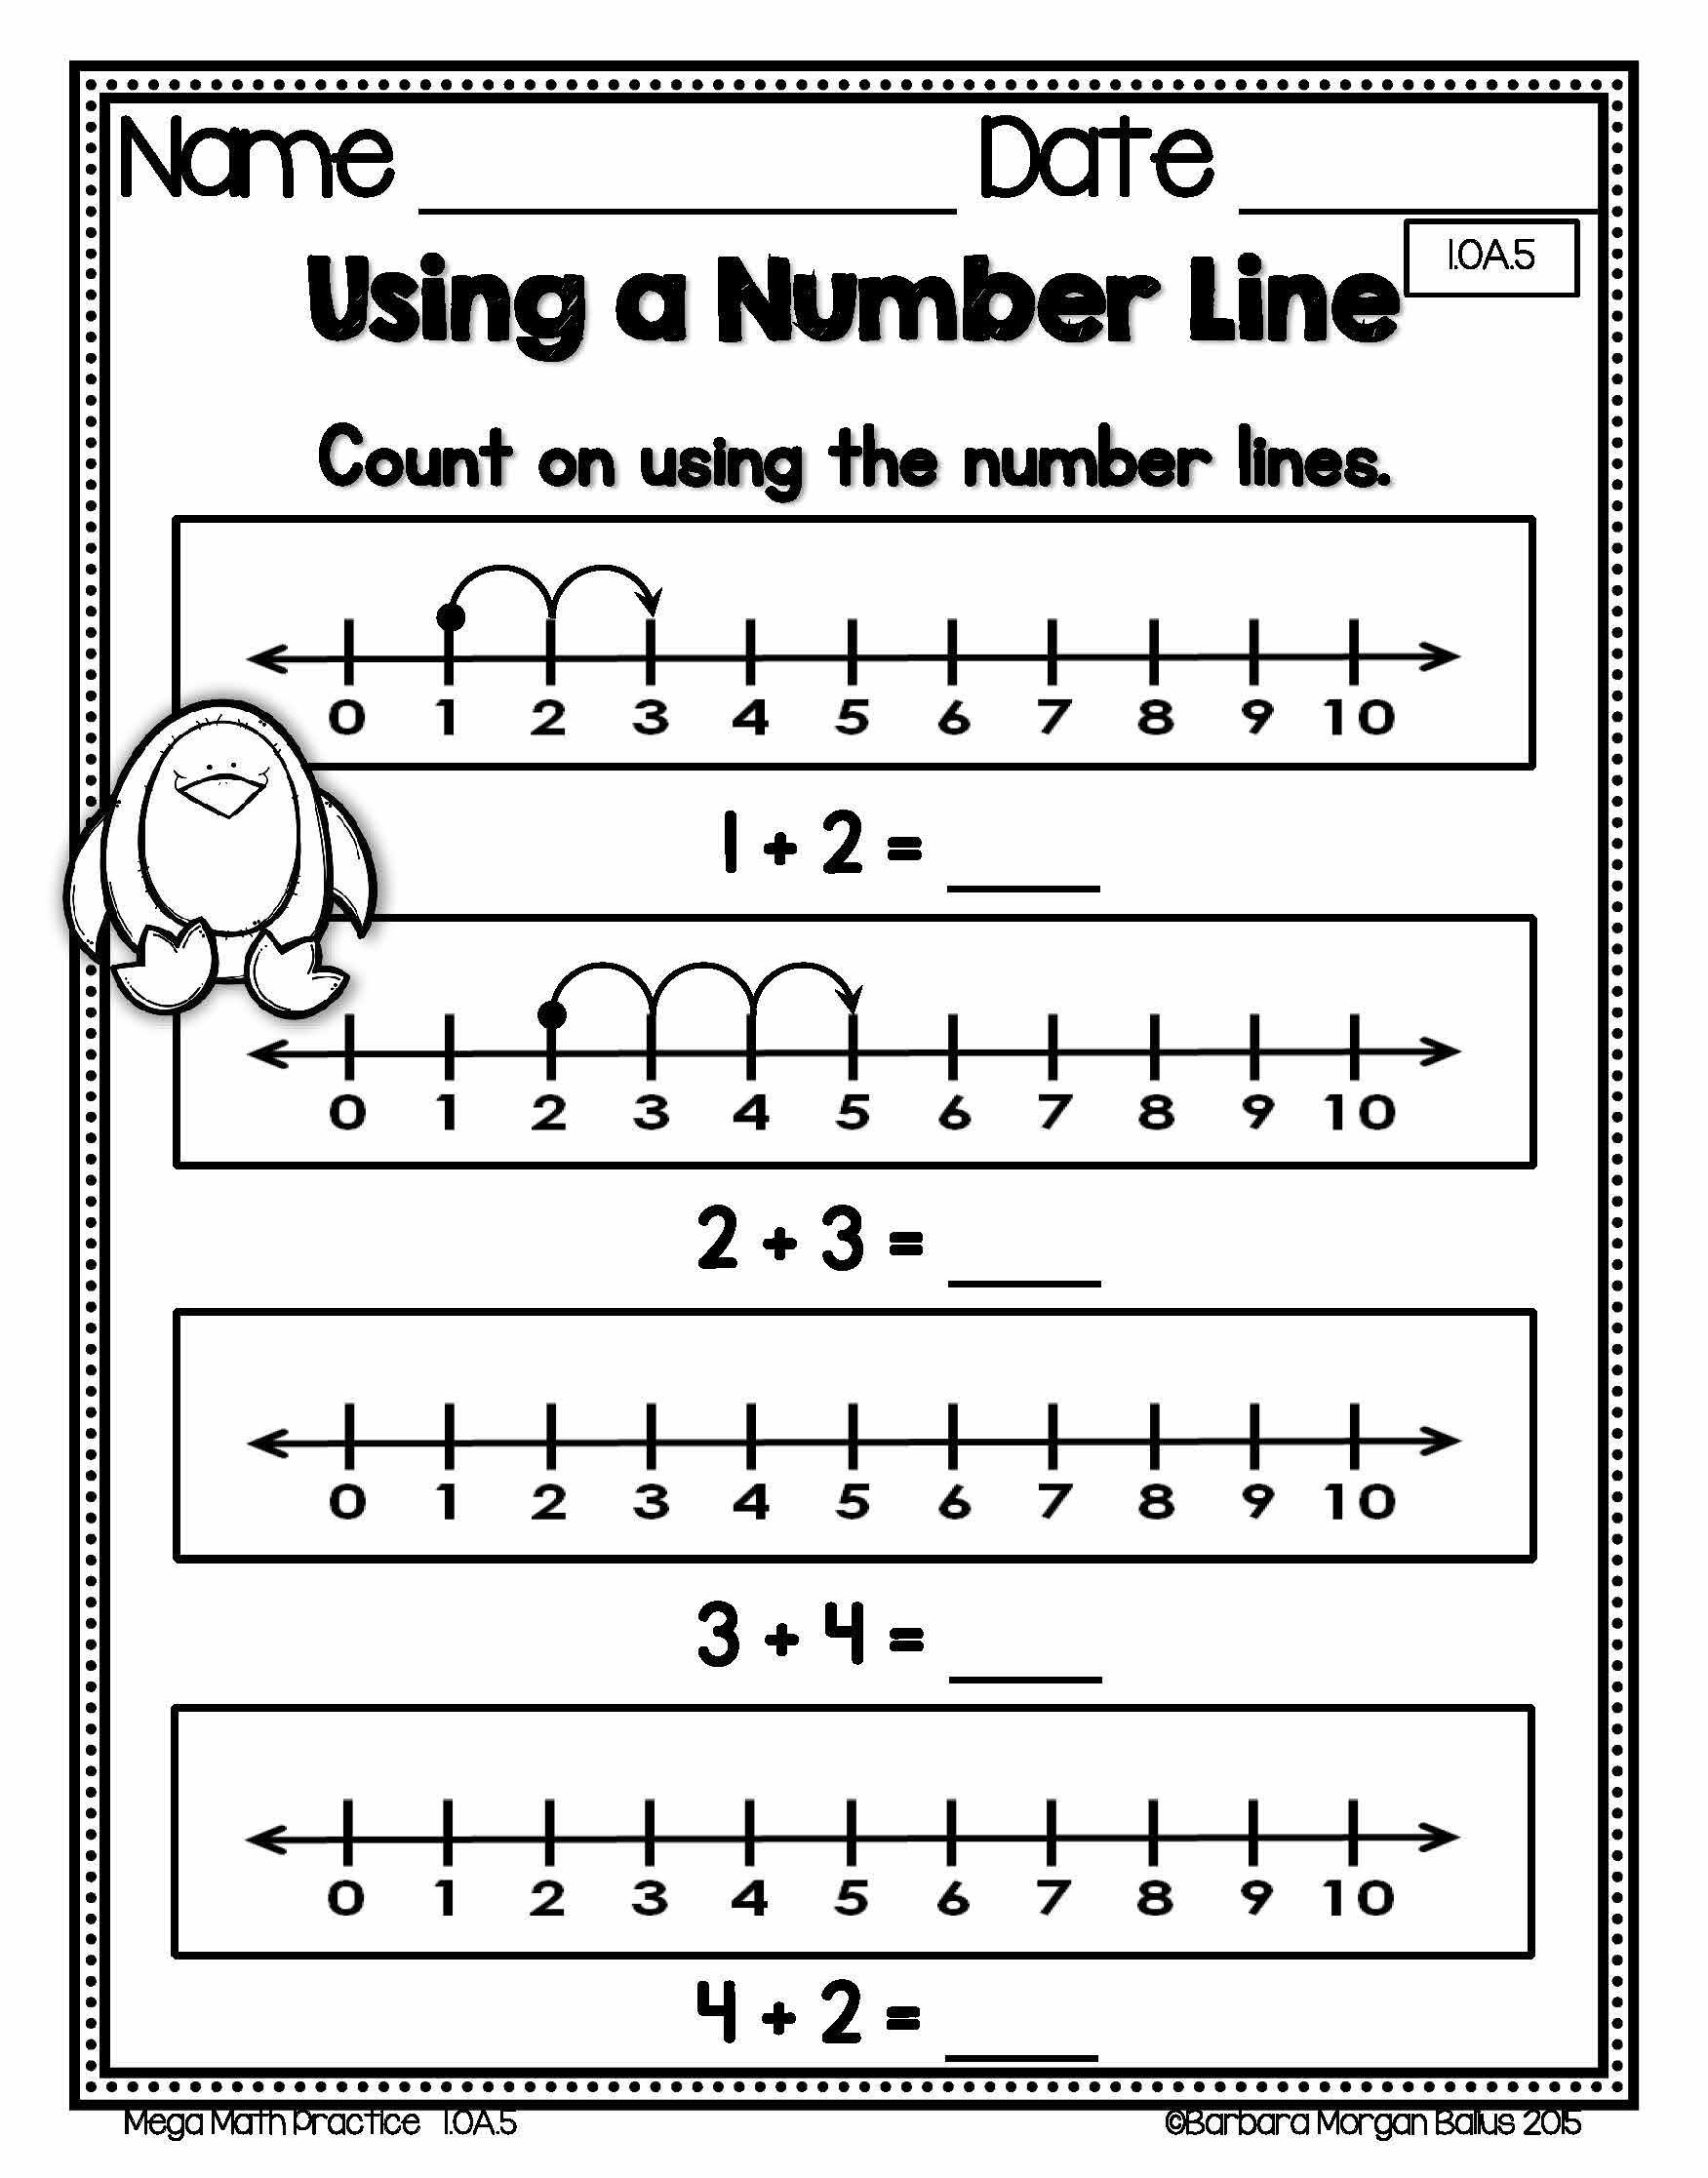 How To Use A Number Line In First Grade Number Sense